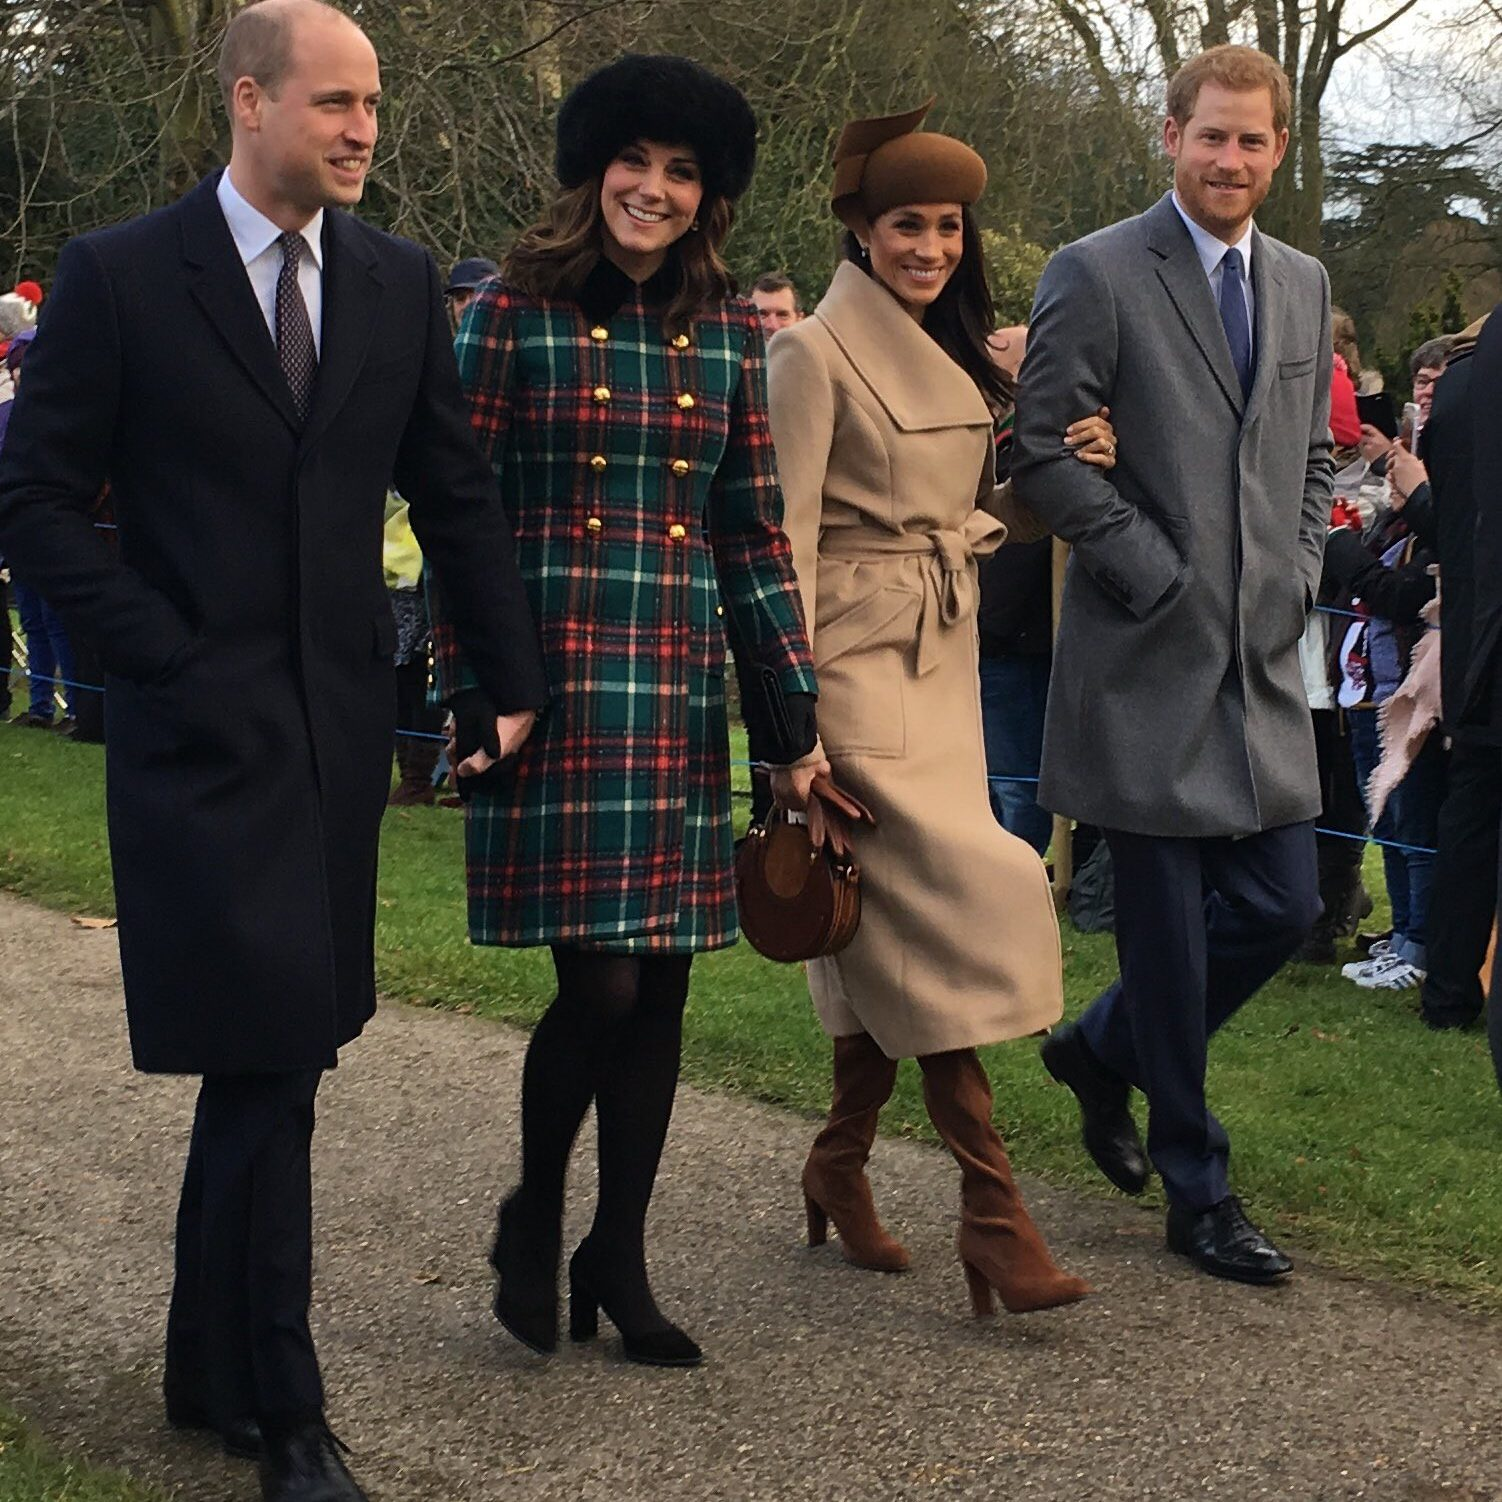 The Duke and Duchess of Cambridge arrive at the service alongside Meghan Markle and Prince Harry